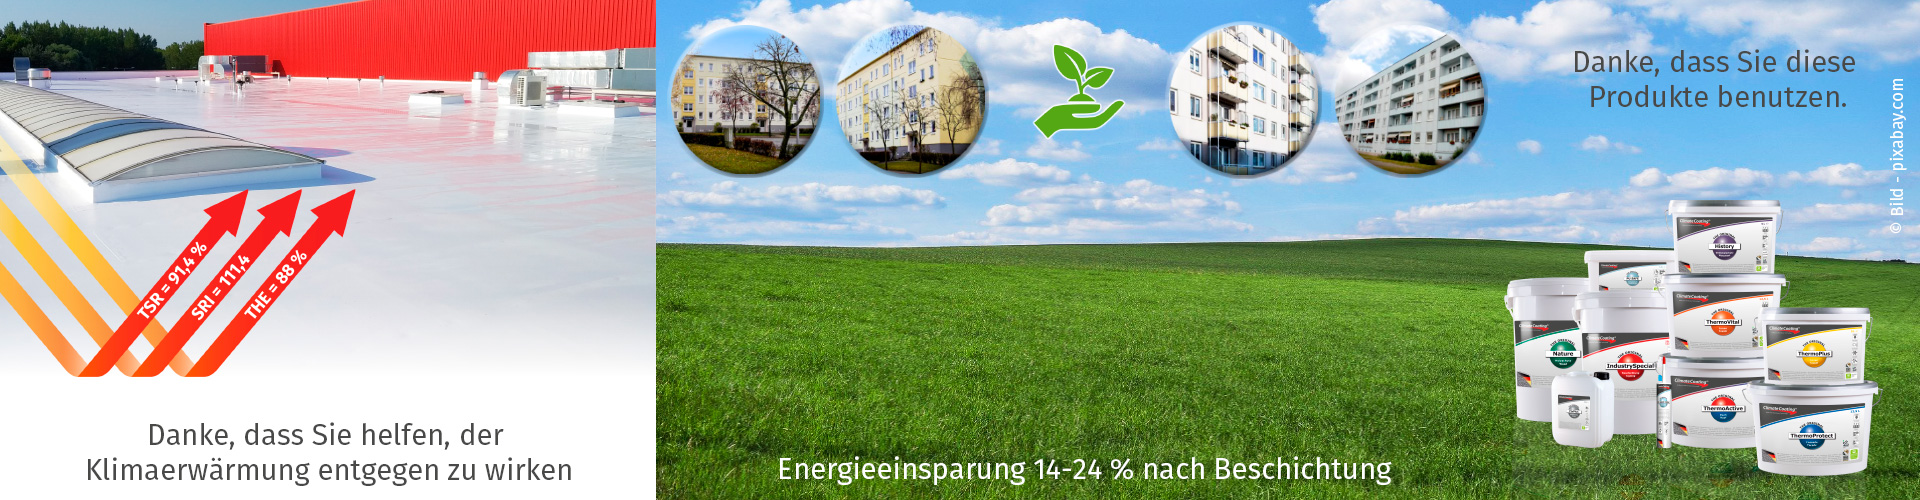 We say thank you. Thank you for helping to reduce CO2 emissions.